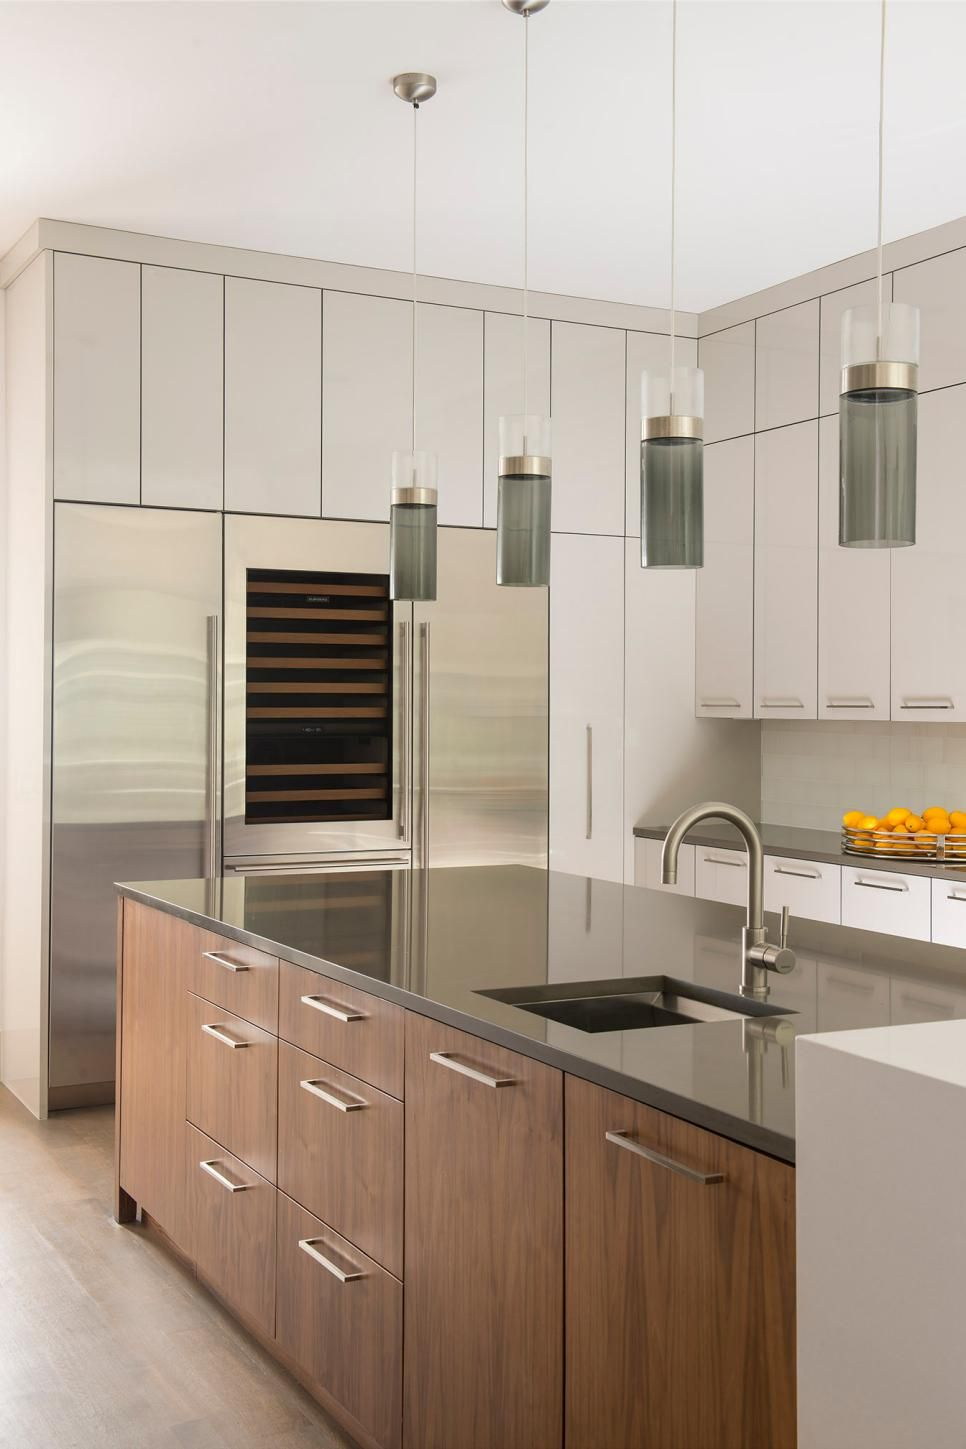 Best Smoky Glass Pendants Are A Stylish Complement To This 400 x 300